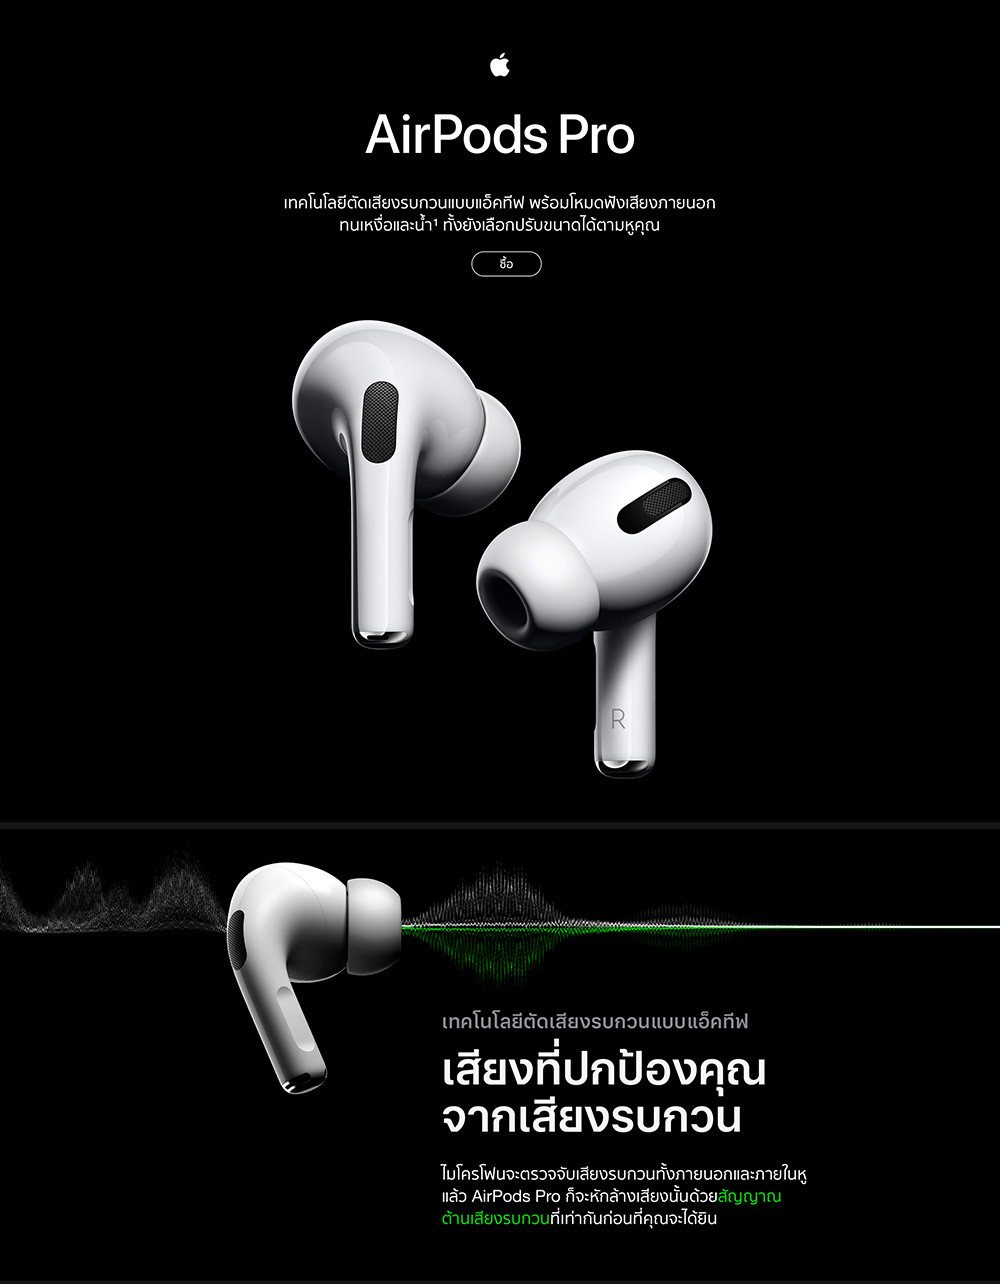 a1-01-3000082312-airpods-pro-9_1.jpg